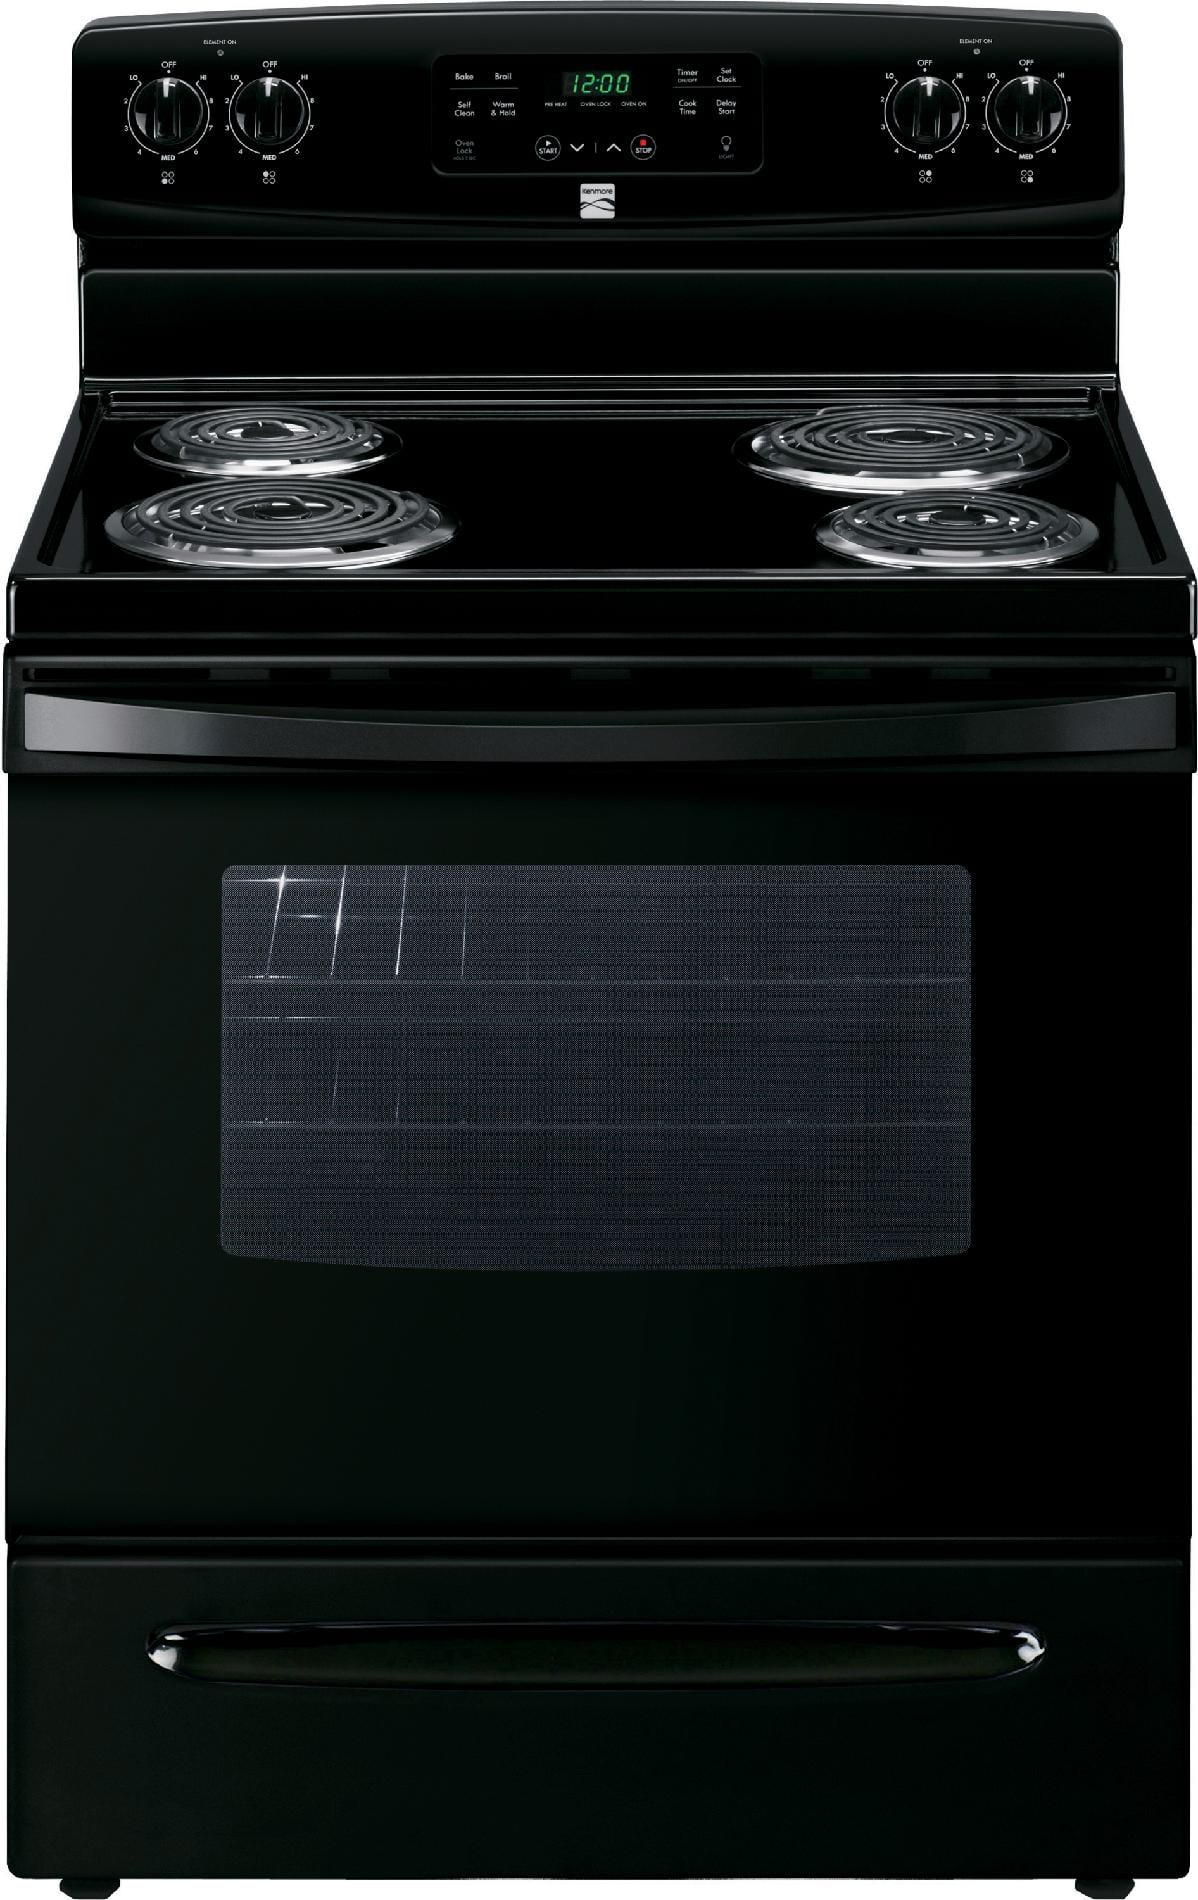 Kenmore 94149 5.3 cu. ft. Electric Range w/ Self-Cleaning Oven - Black $325. also SYW points for buying 2+ Kenmore appliances